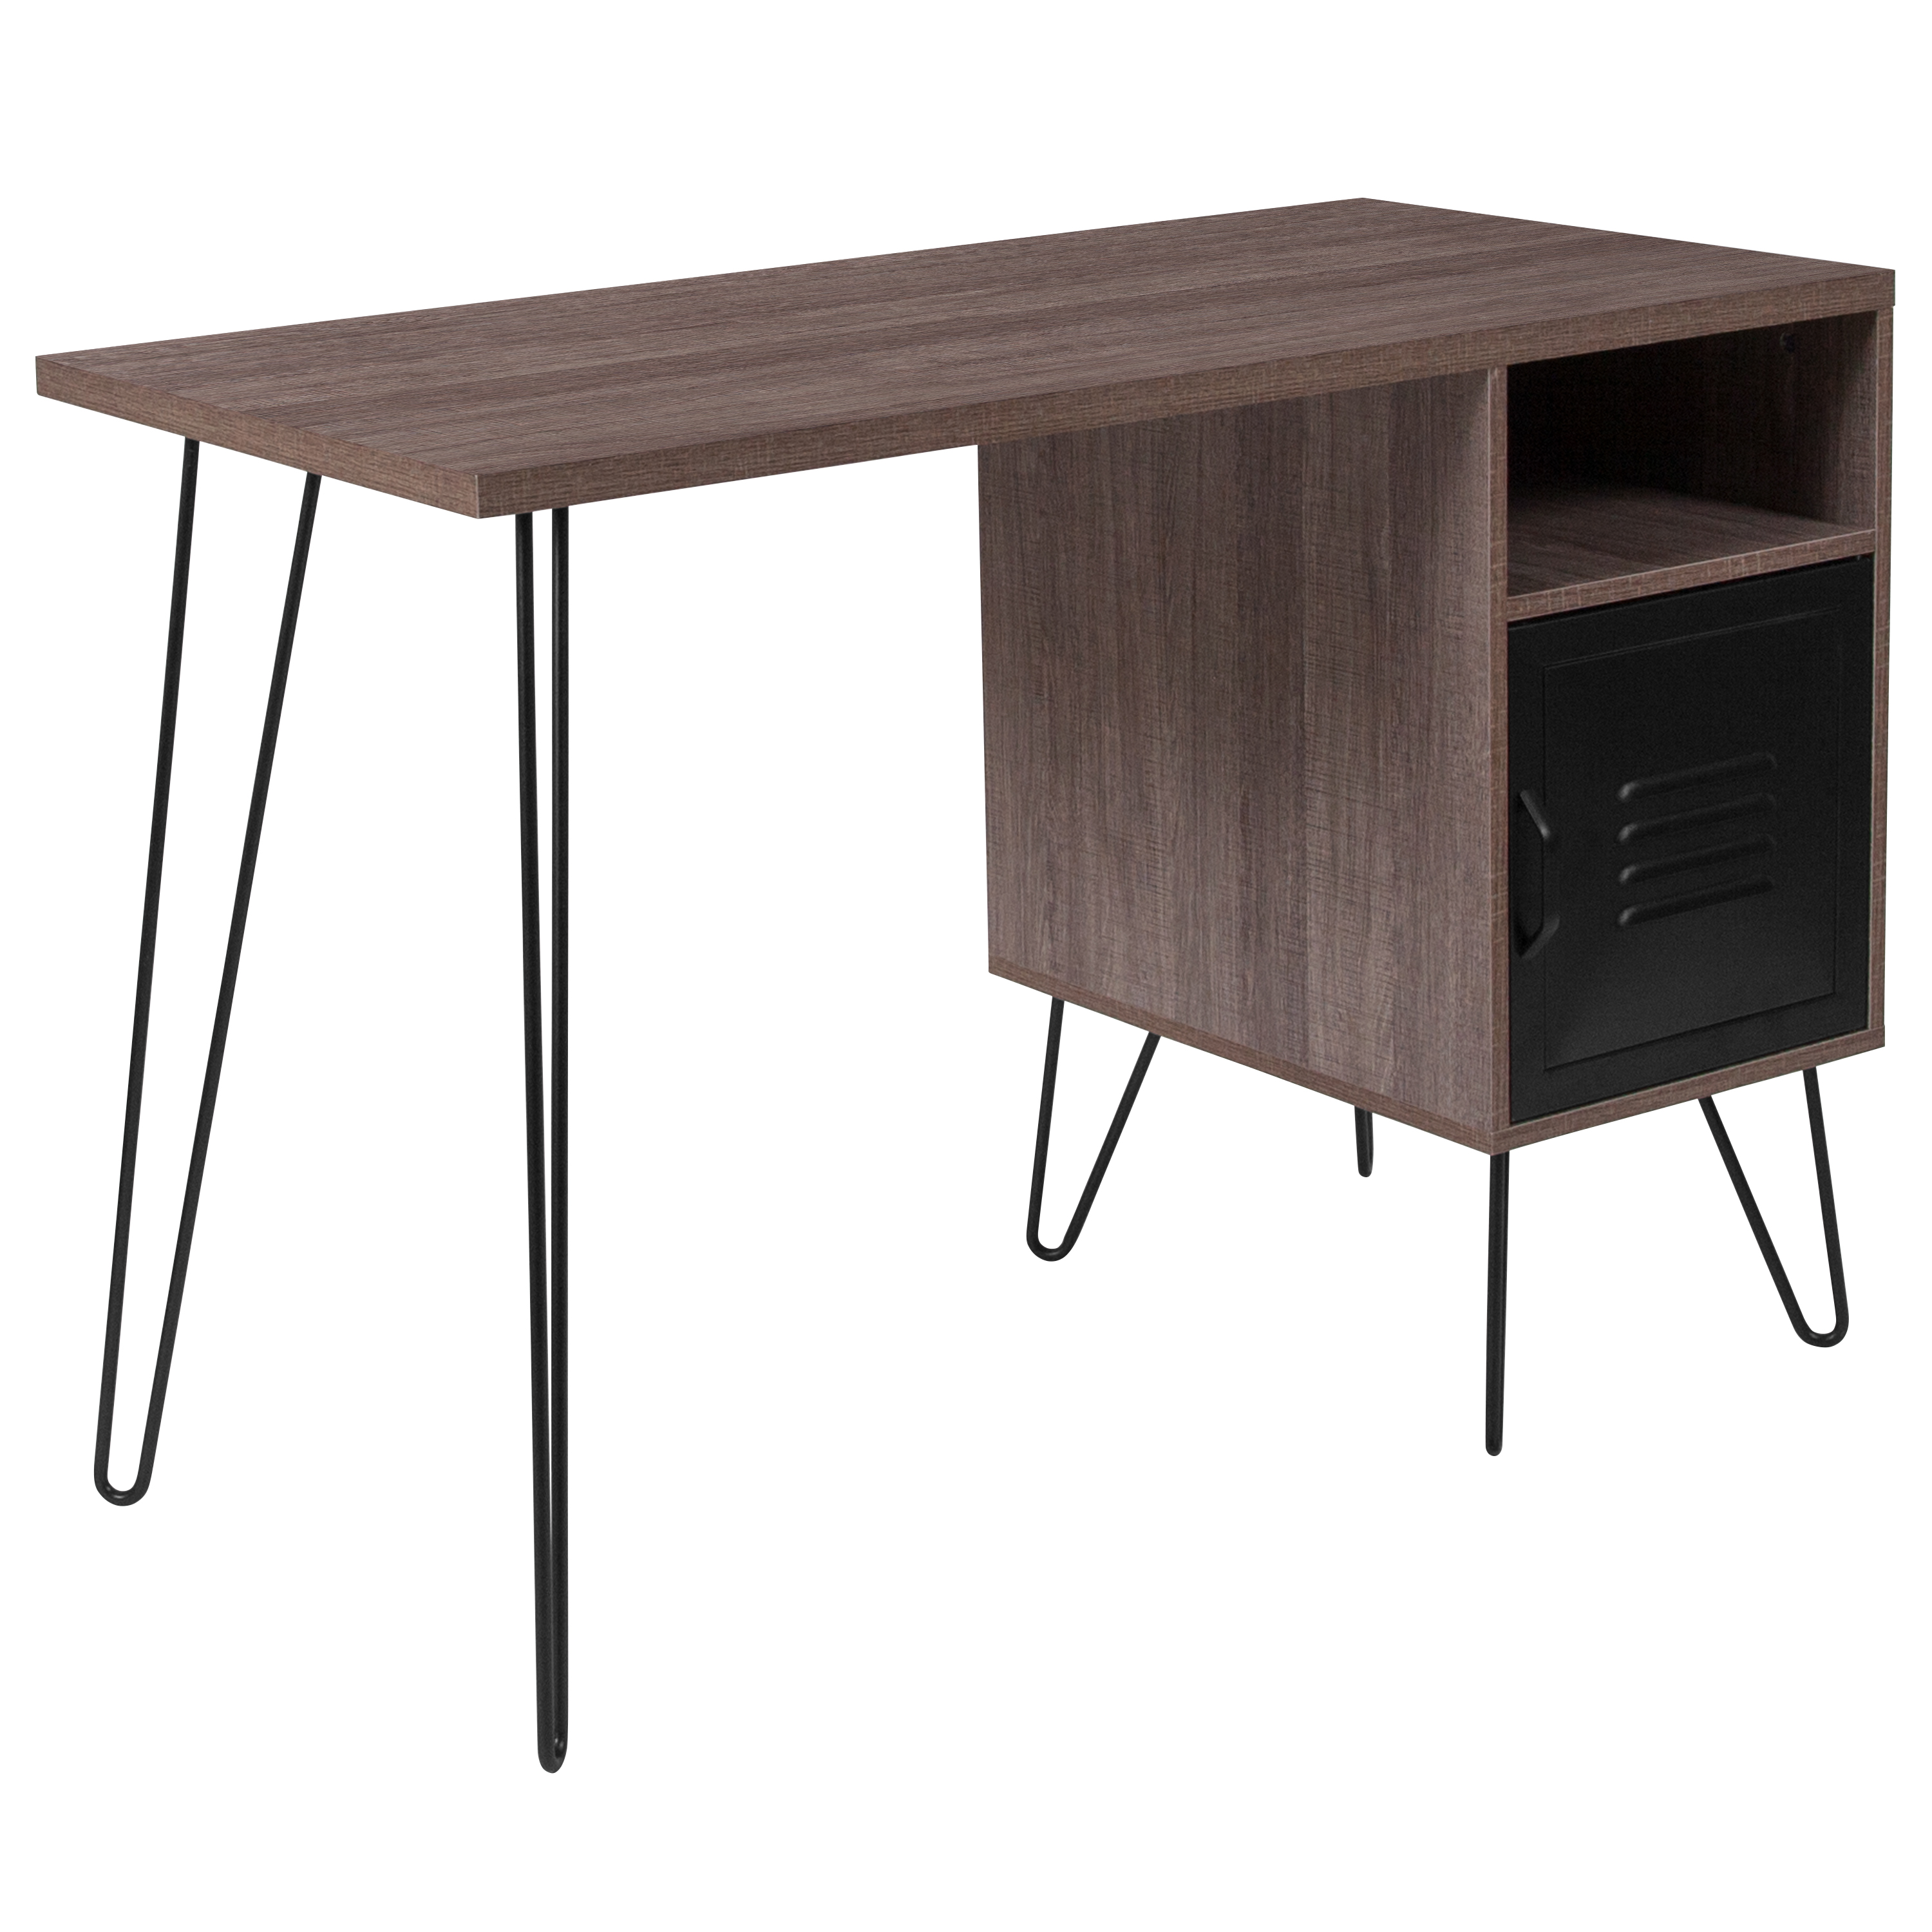 Flash Furniture Woodridge Collection Rustic Wood Grain Finish Computer Desk with Metal Cabinet Door and Black Metal Legs